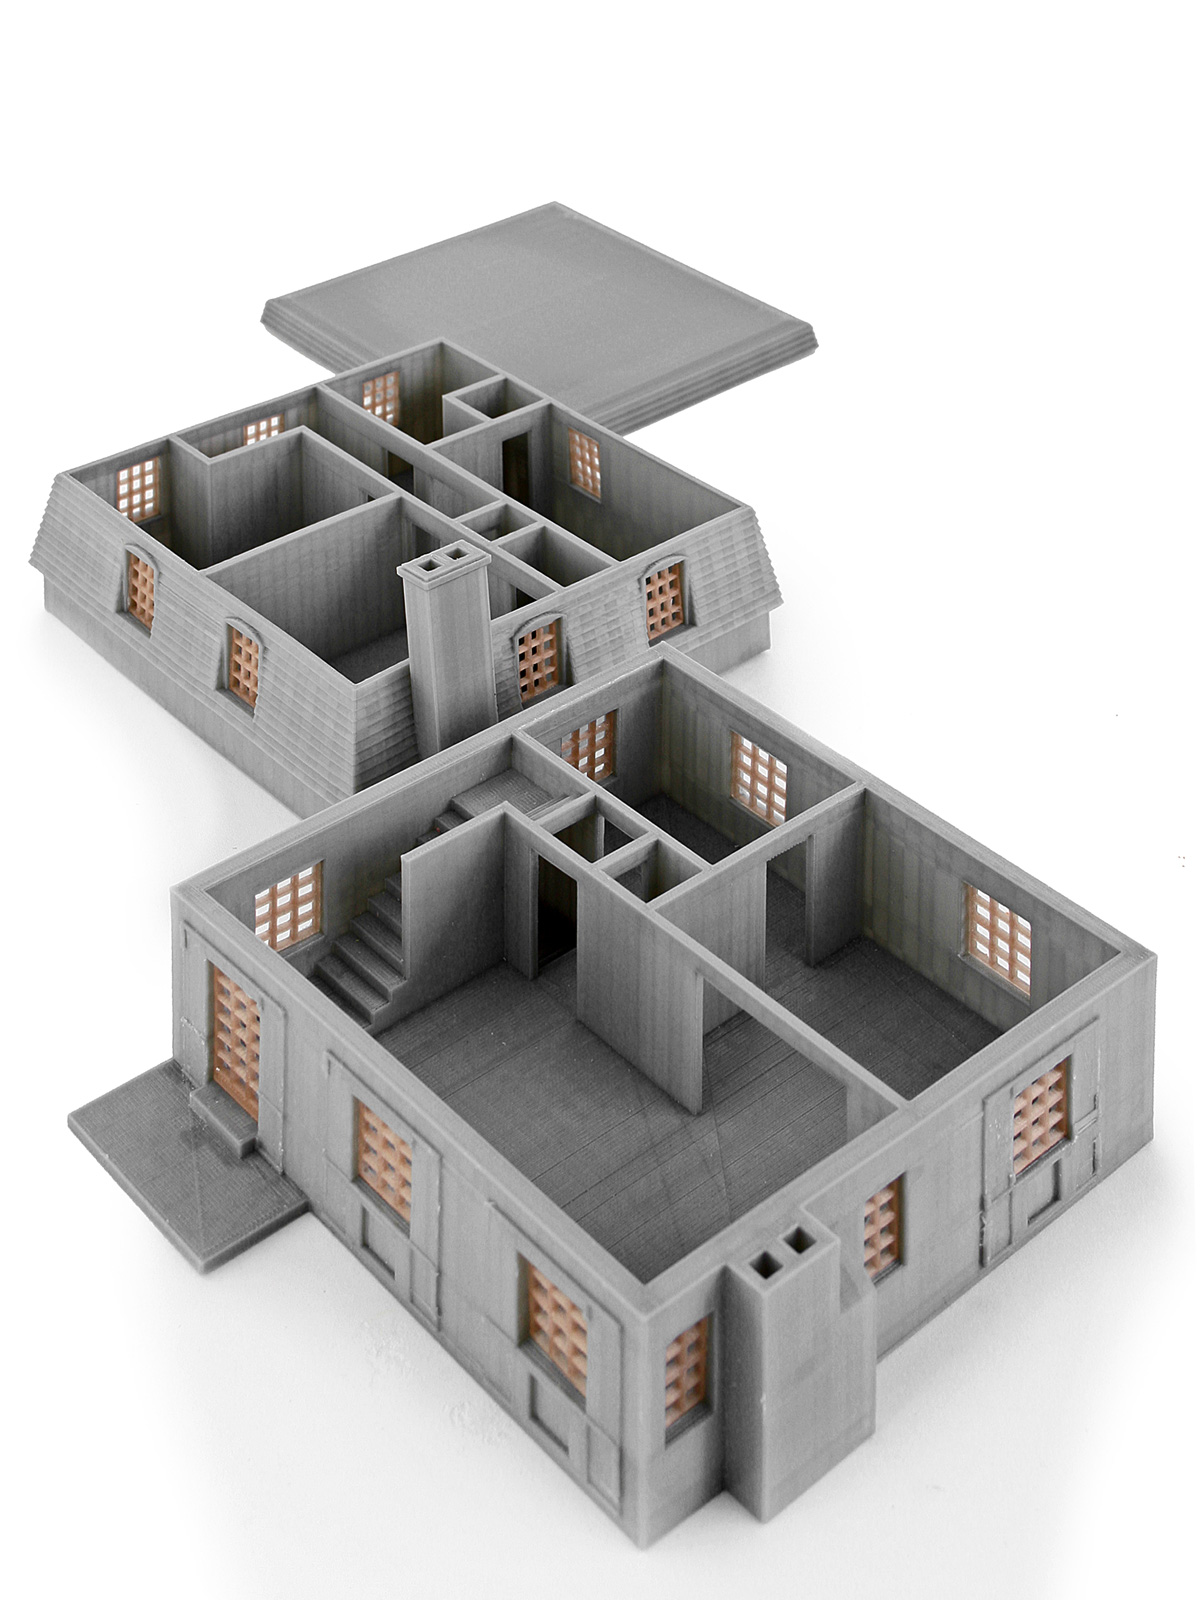 3d Printed Architectural Model Chateau 2 3 Degrees Askew